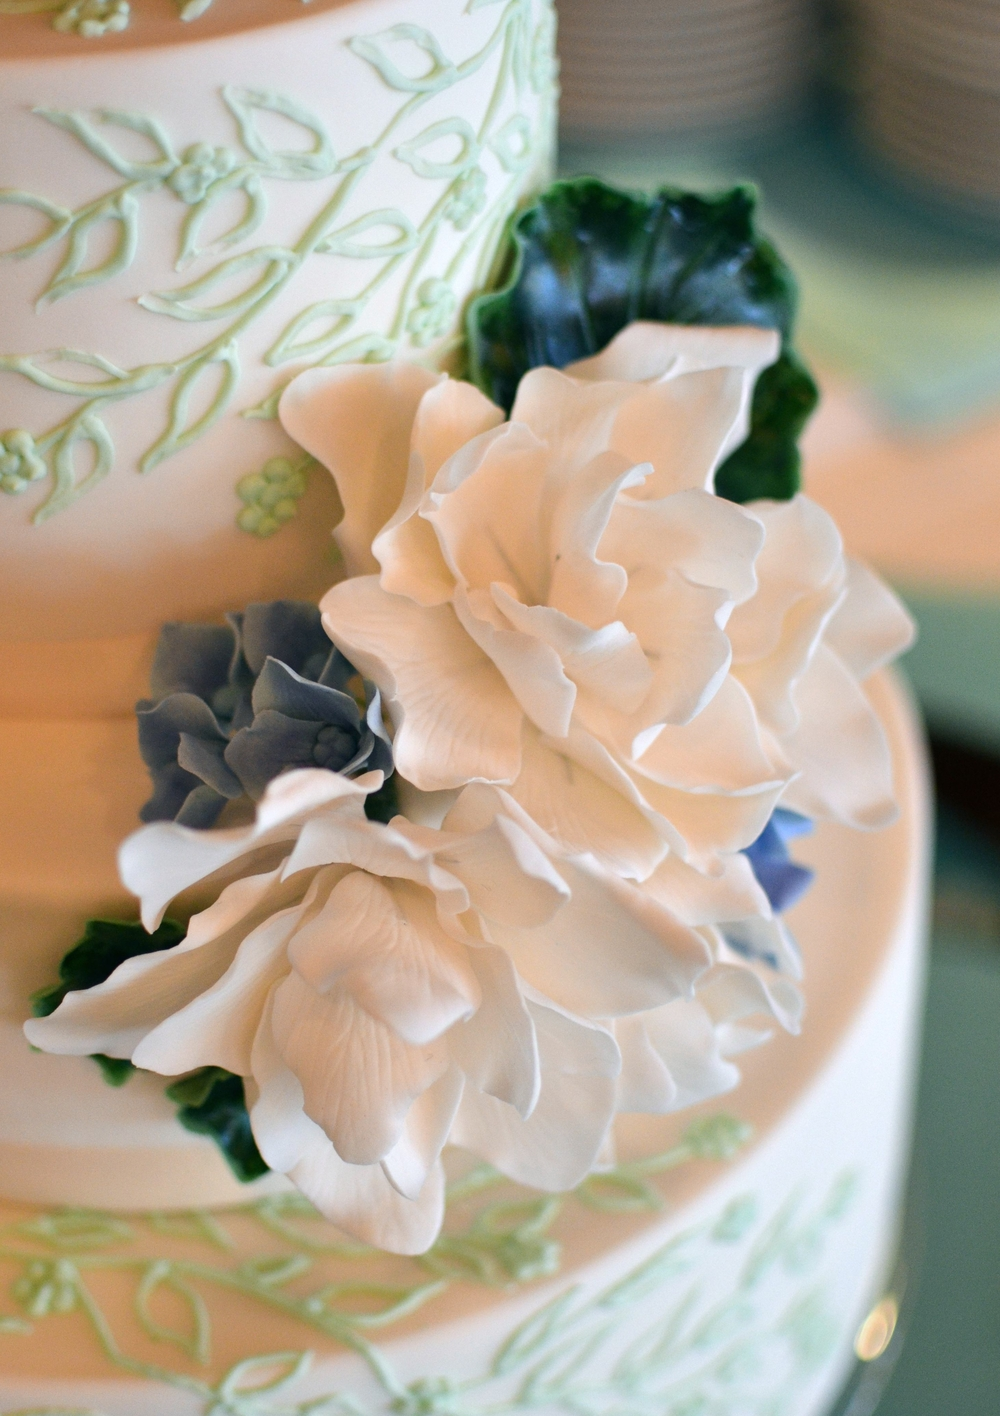 Sugar Gardenias, Hydrangeas, and Variegated Geranium Leaves on a delicate Mint Green and Ivory Wedding Cake. Image © Carla Schier.